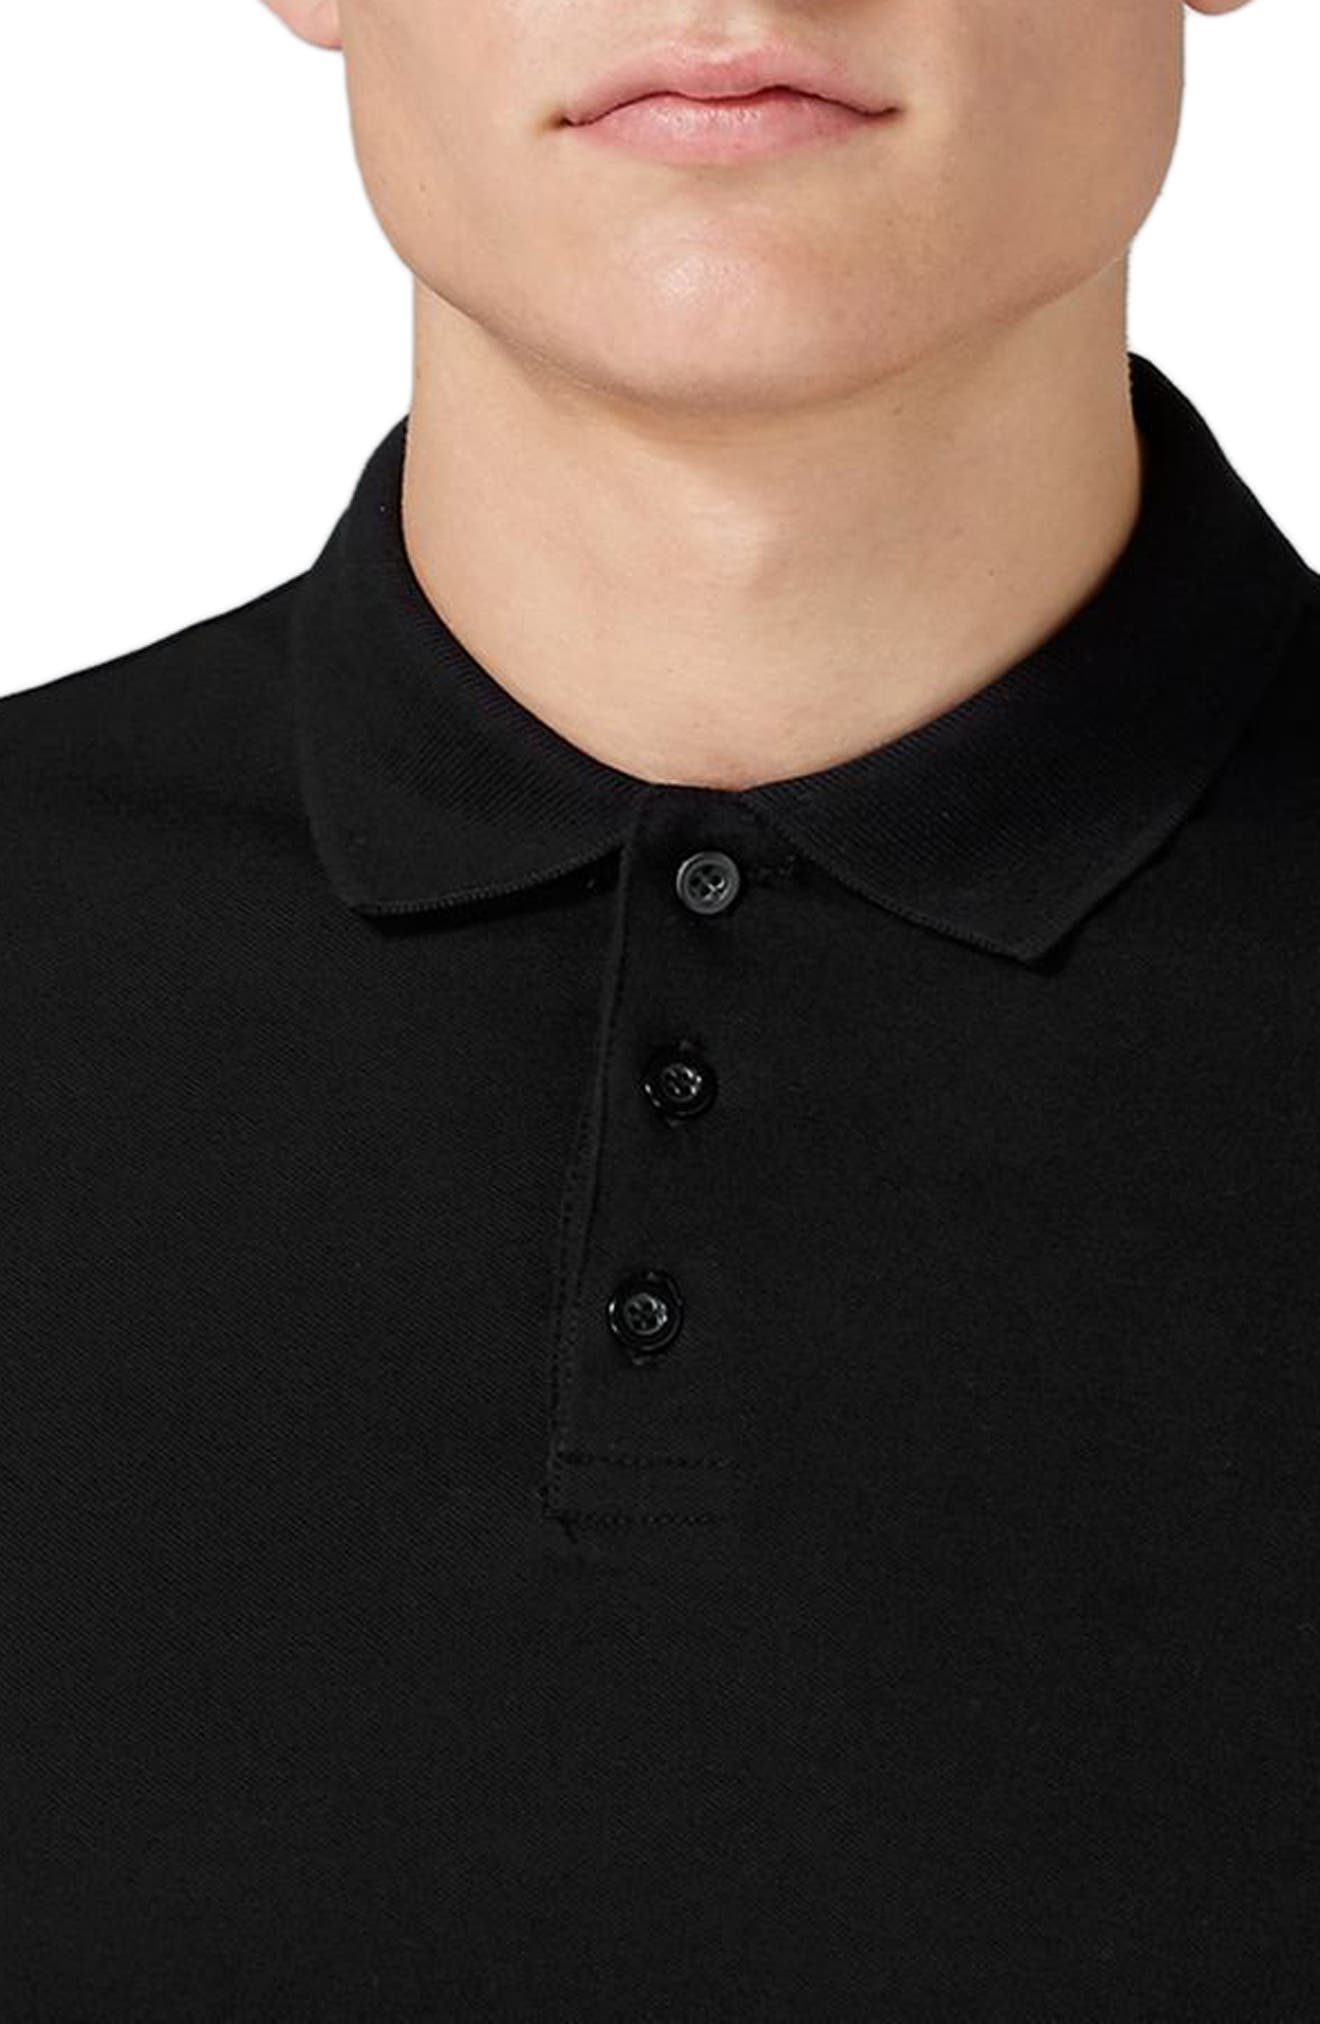 Muscle Fit Polo,                             Alternate thumbnail 3, color,                             001